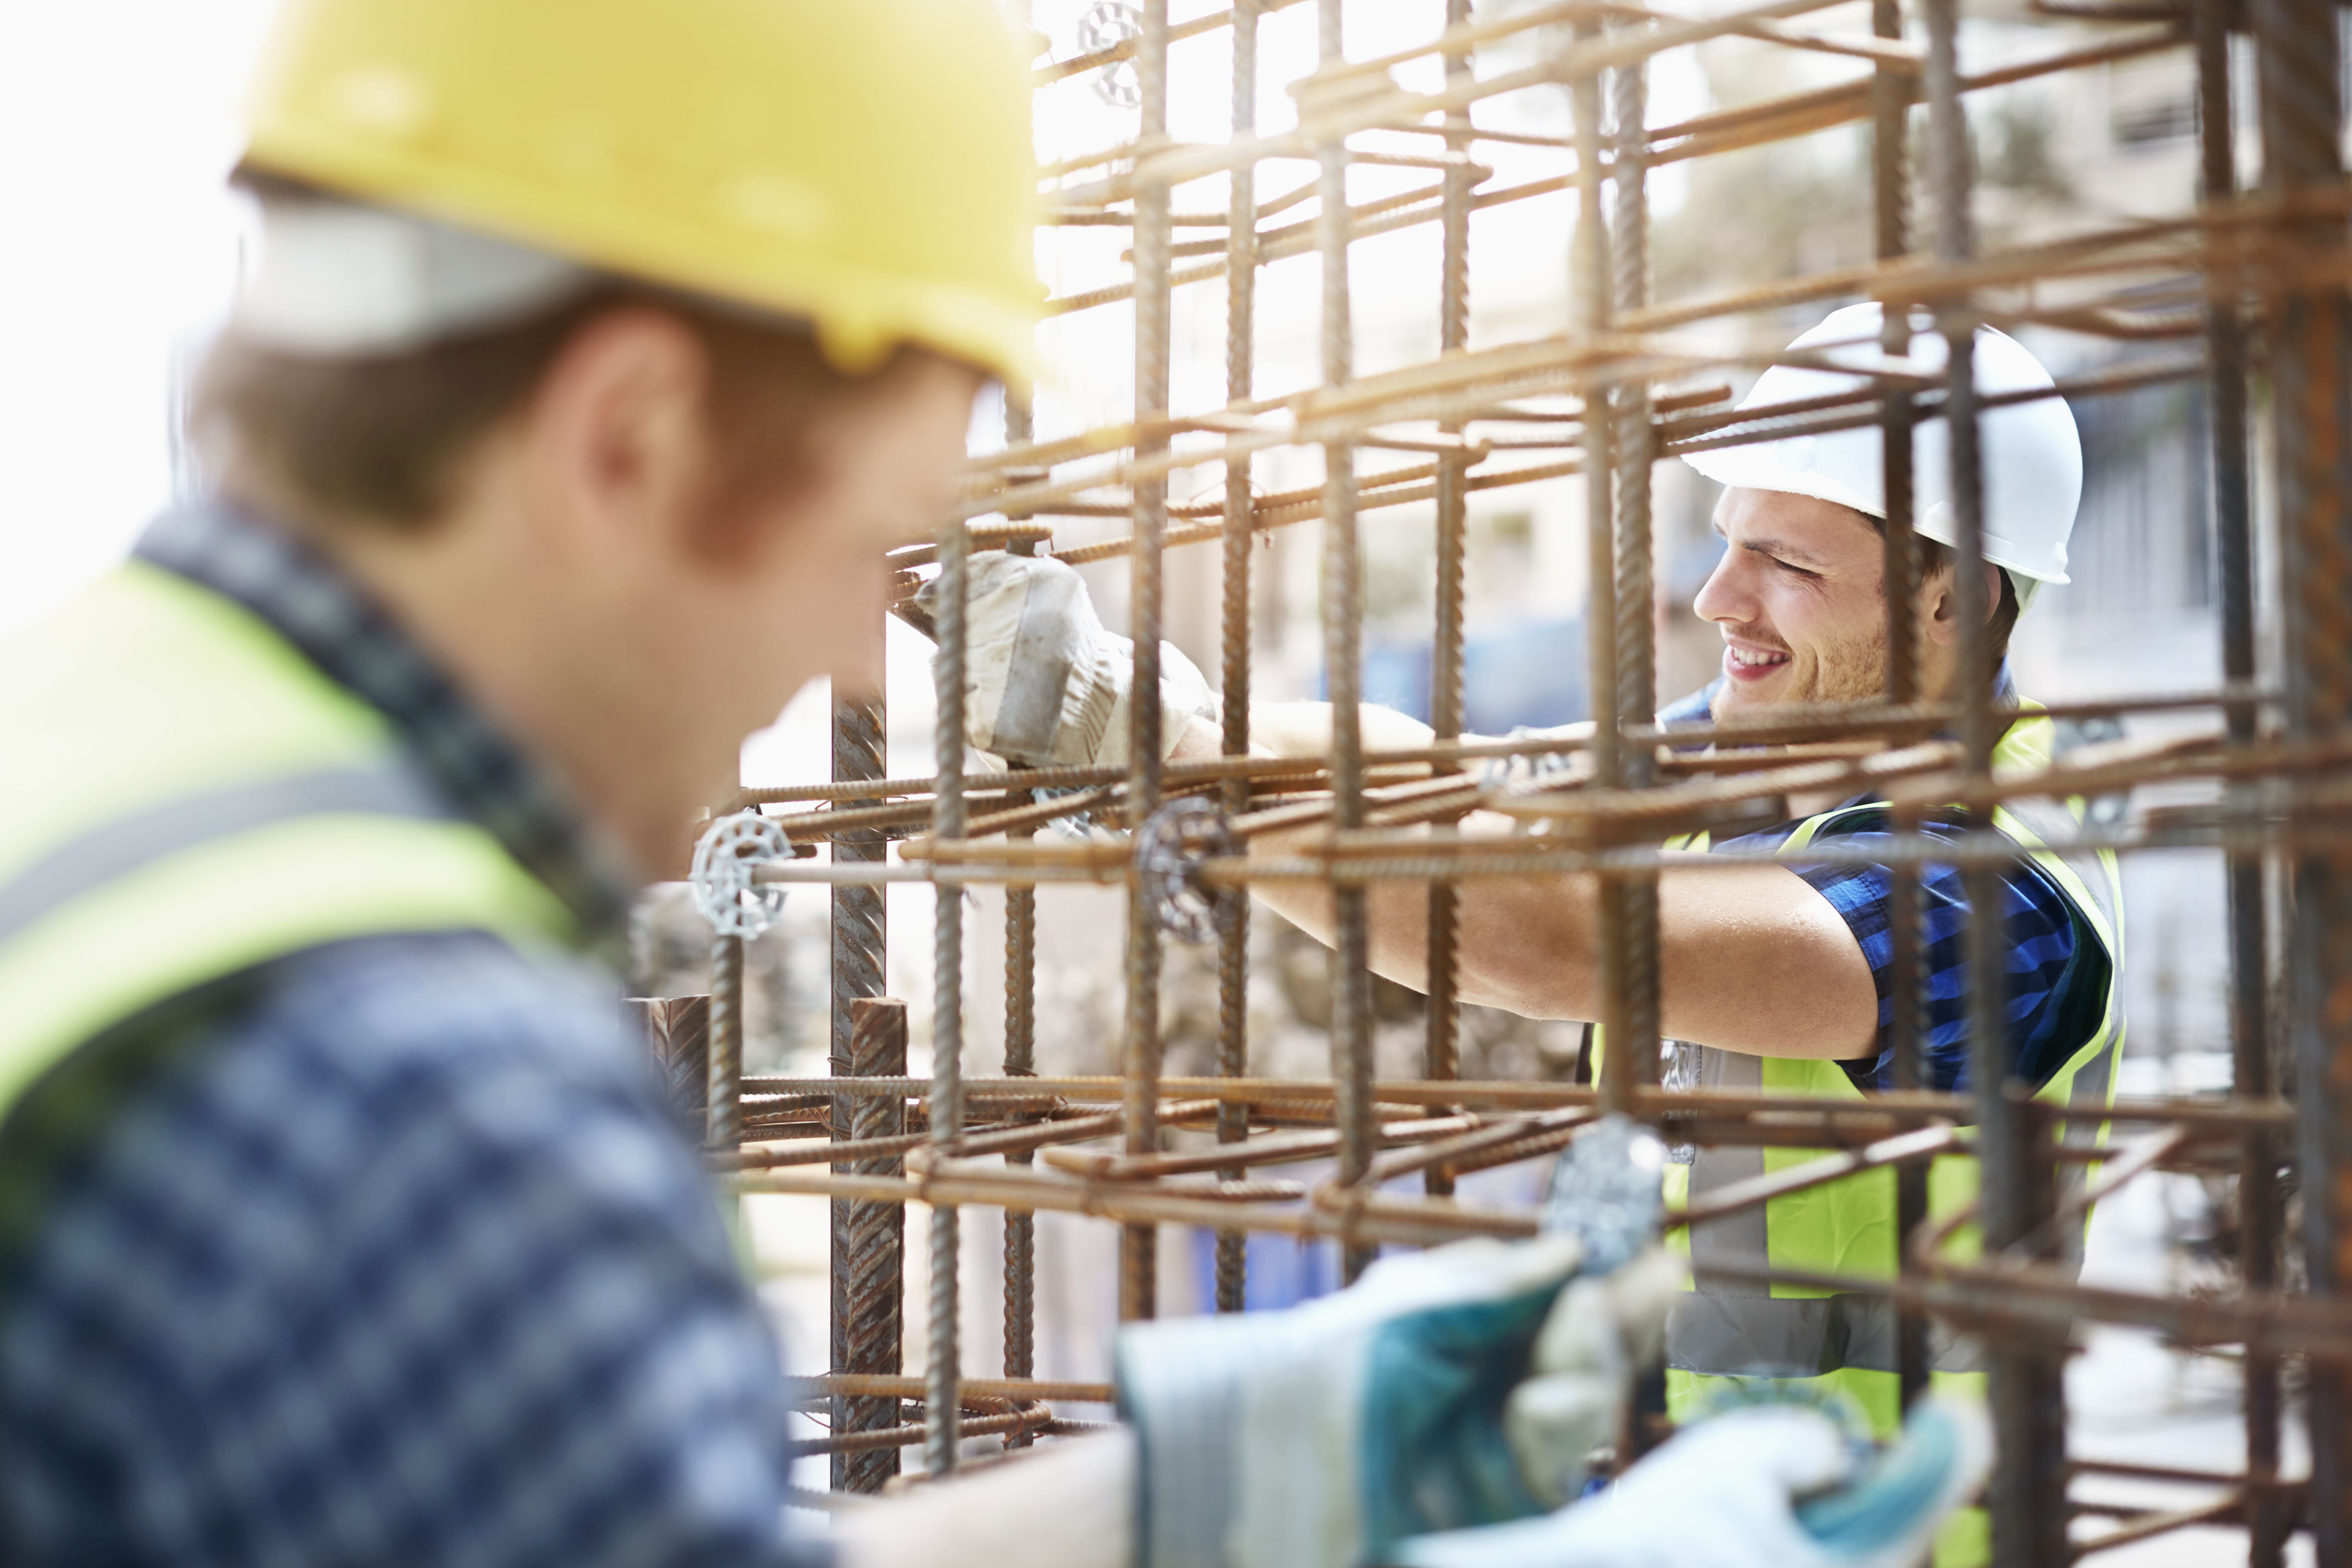 reinforcing iron and rebar worker career information